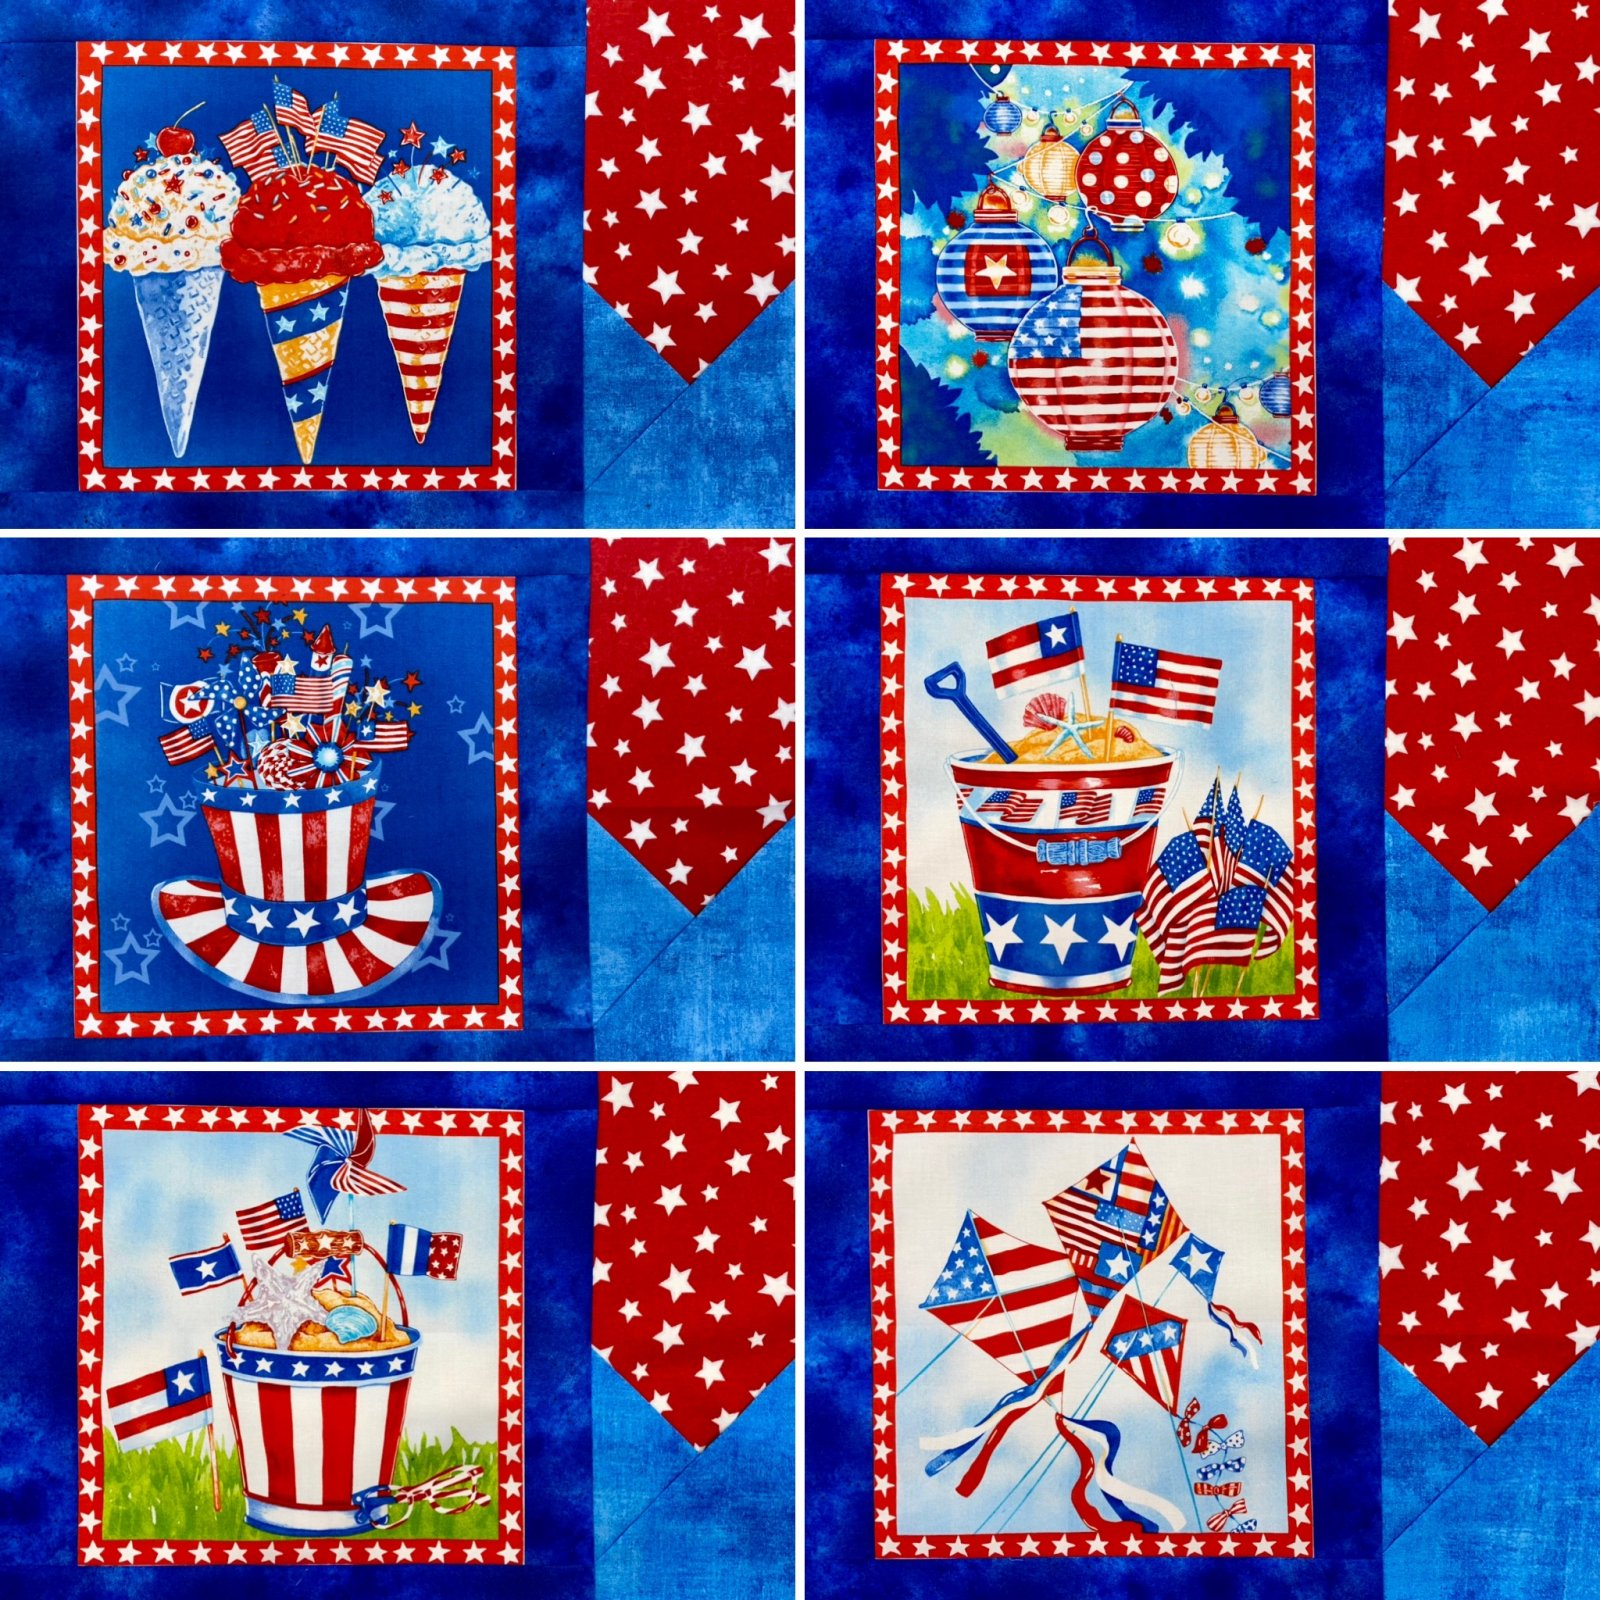 Star Spangled Placemats Kit